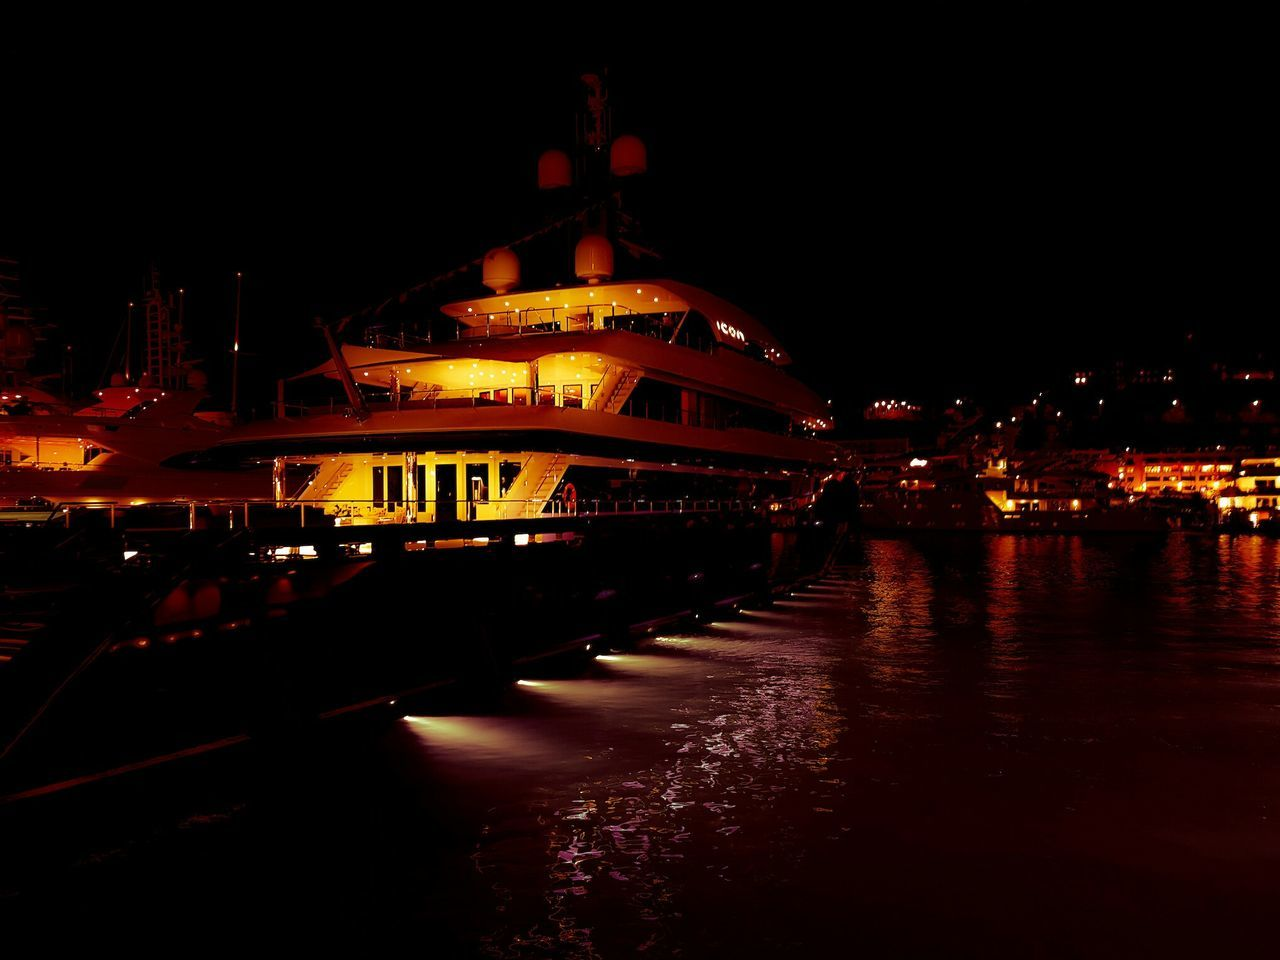 Monaco Yacht Show, Monaco Night Architecture Illuminated Reflection Business Finance And Industry Building Exterior Travel Destinations City No People Outdoors Sky Water Monaco